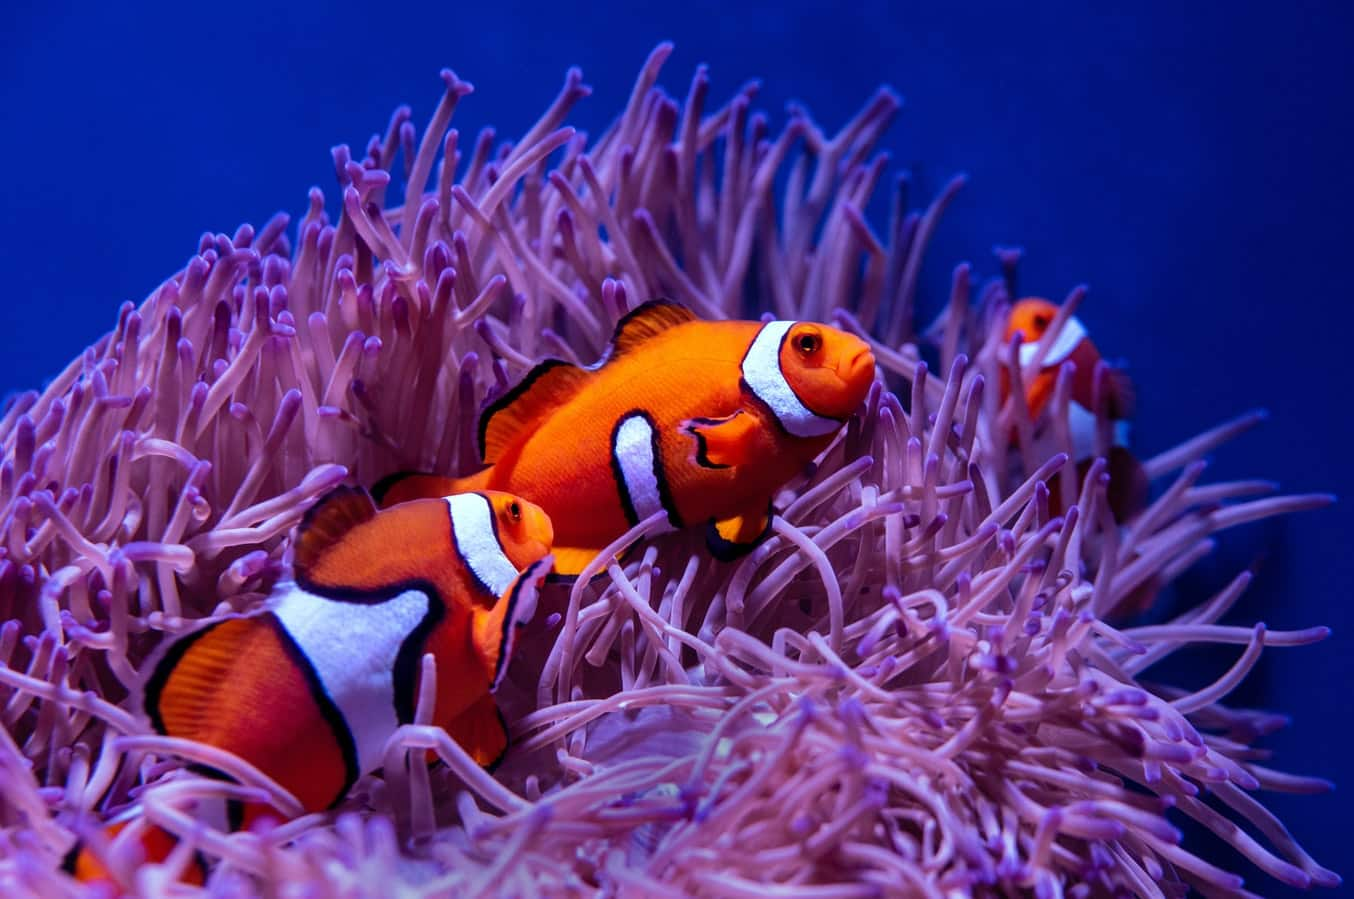 The relationship between the clownfish and sea anemone is called symbiosis